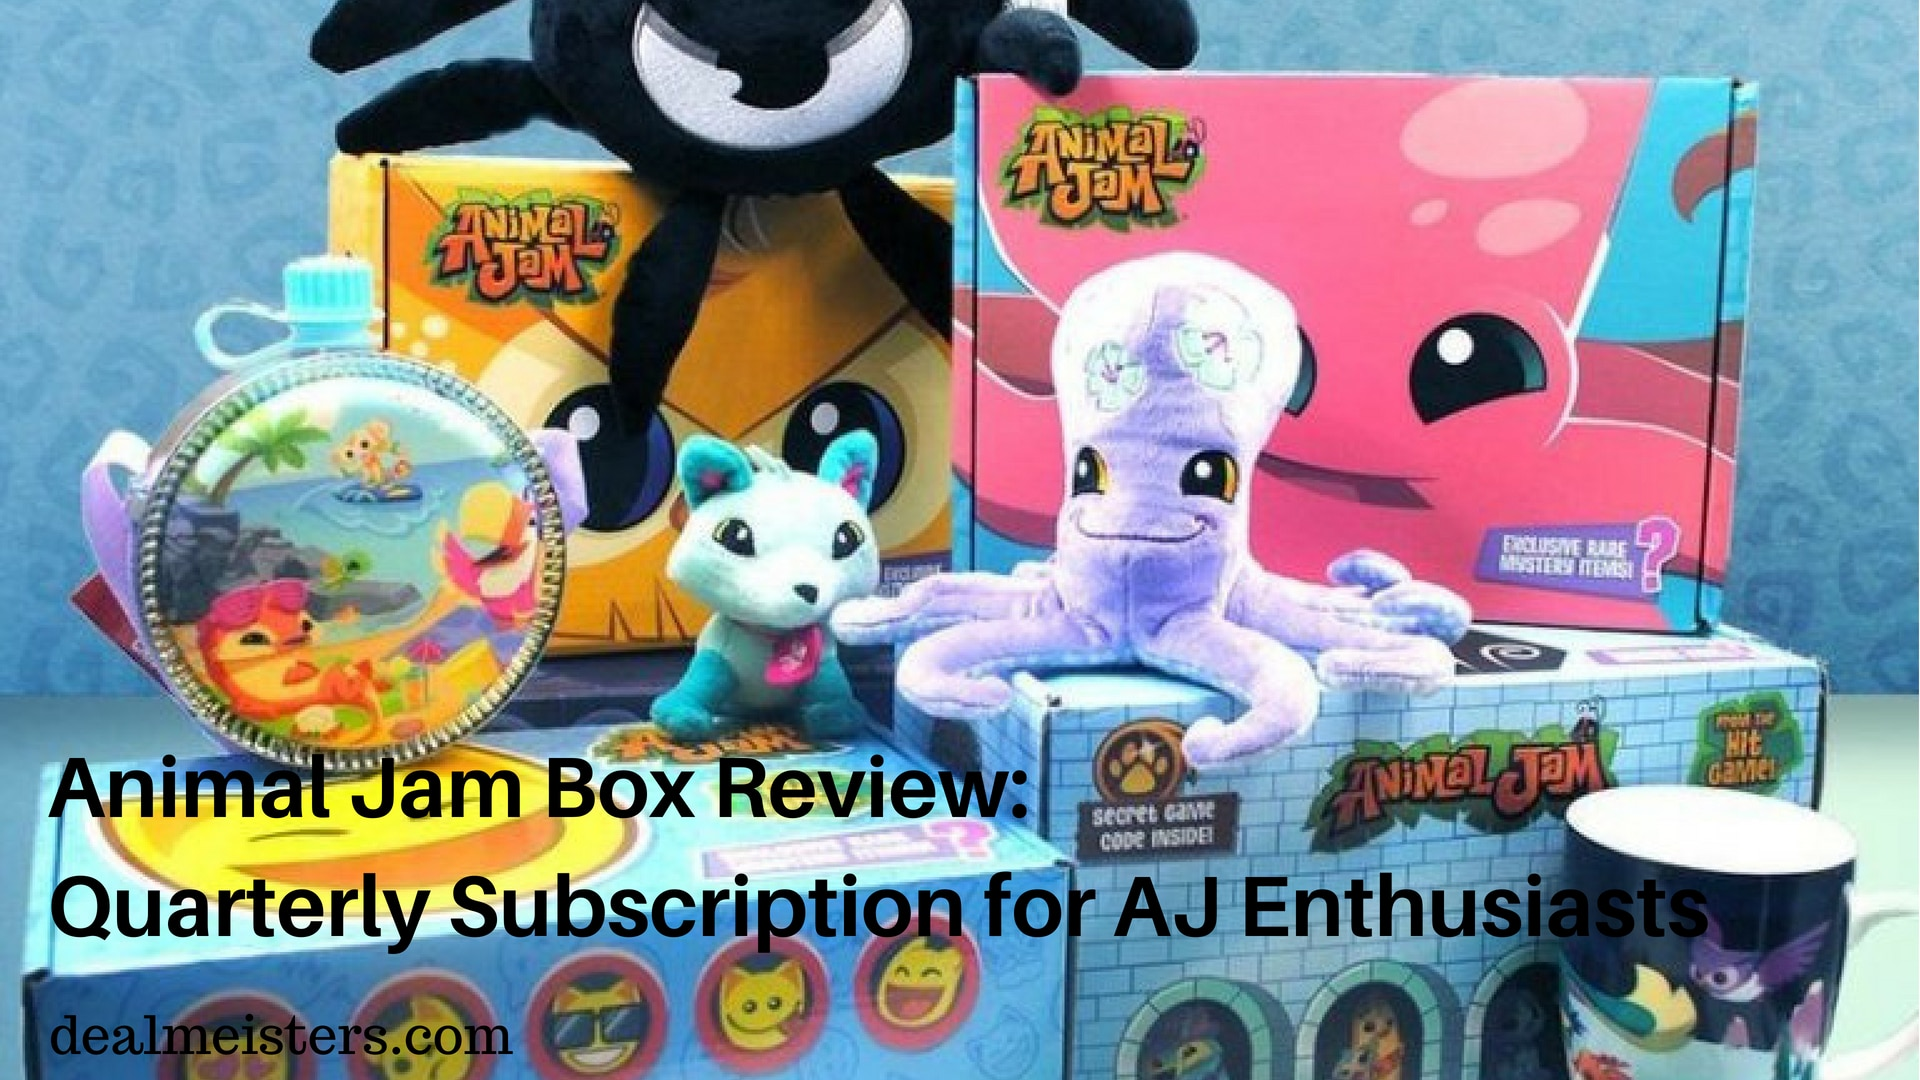 animal jam box review: quarterly subscription for aj enthusiasts